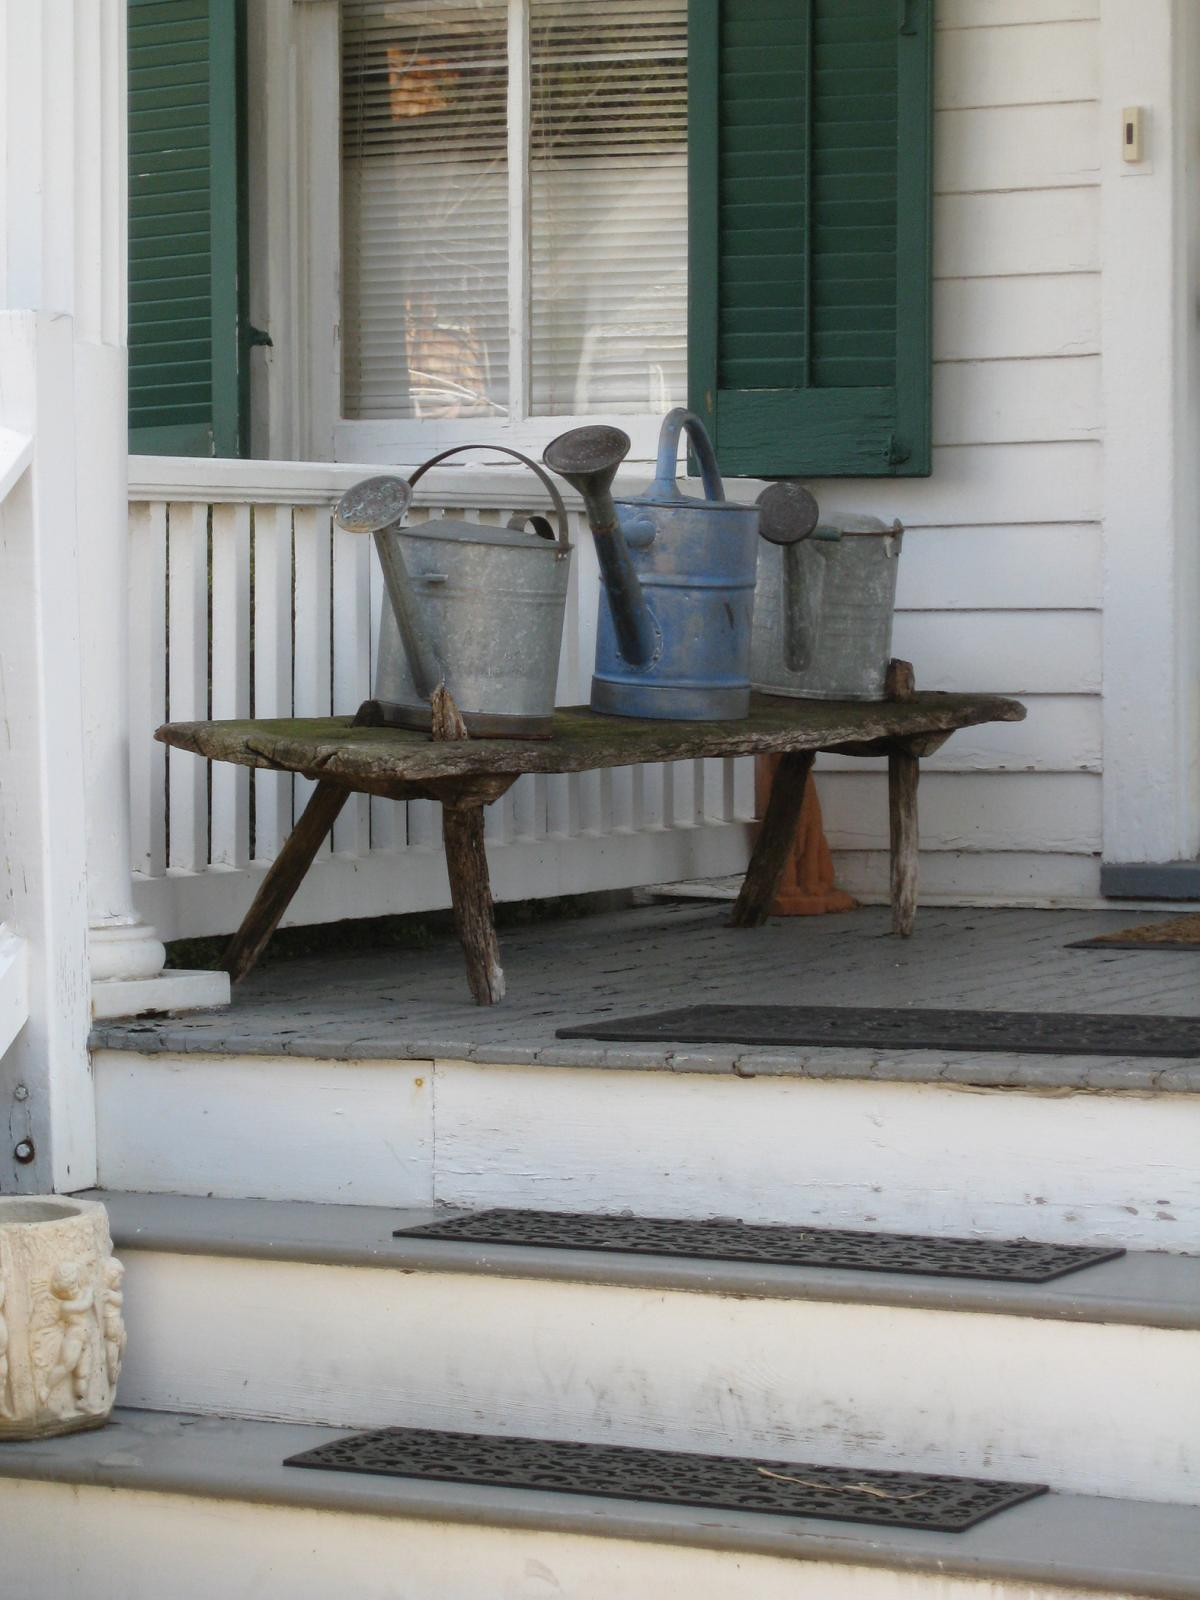 Photograph of front porch, bench with metal buckets on it